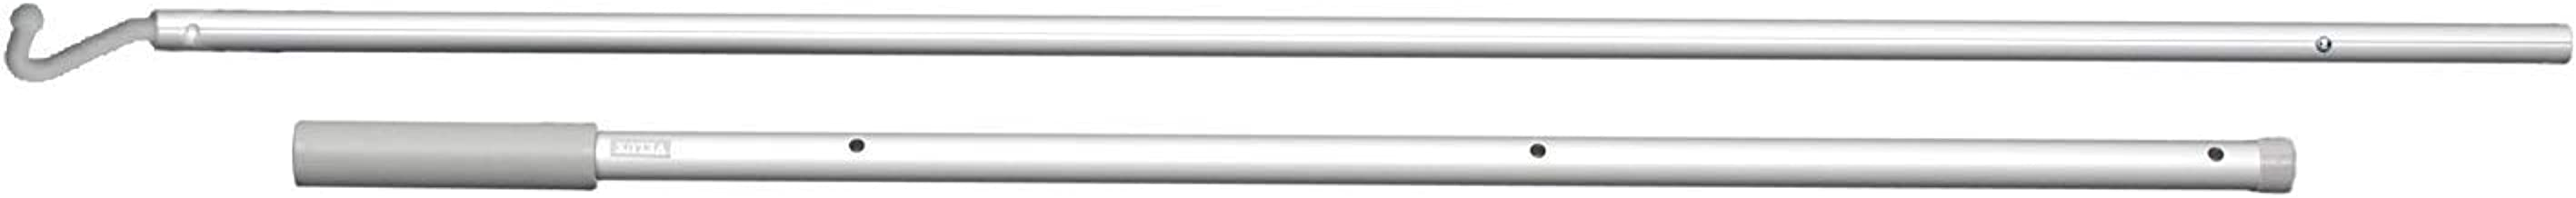 VELUX ZXT 200 Skylight 3-6 Ft. Telescoping 7-Hook Control Rod for Manually Operated Skylight Blinds